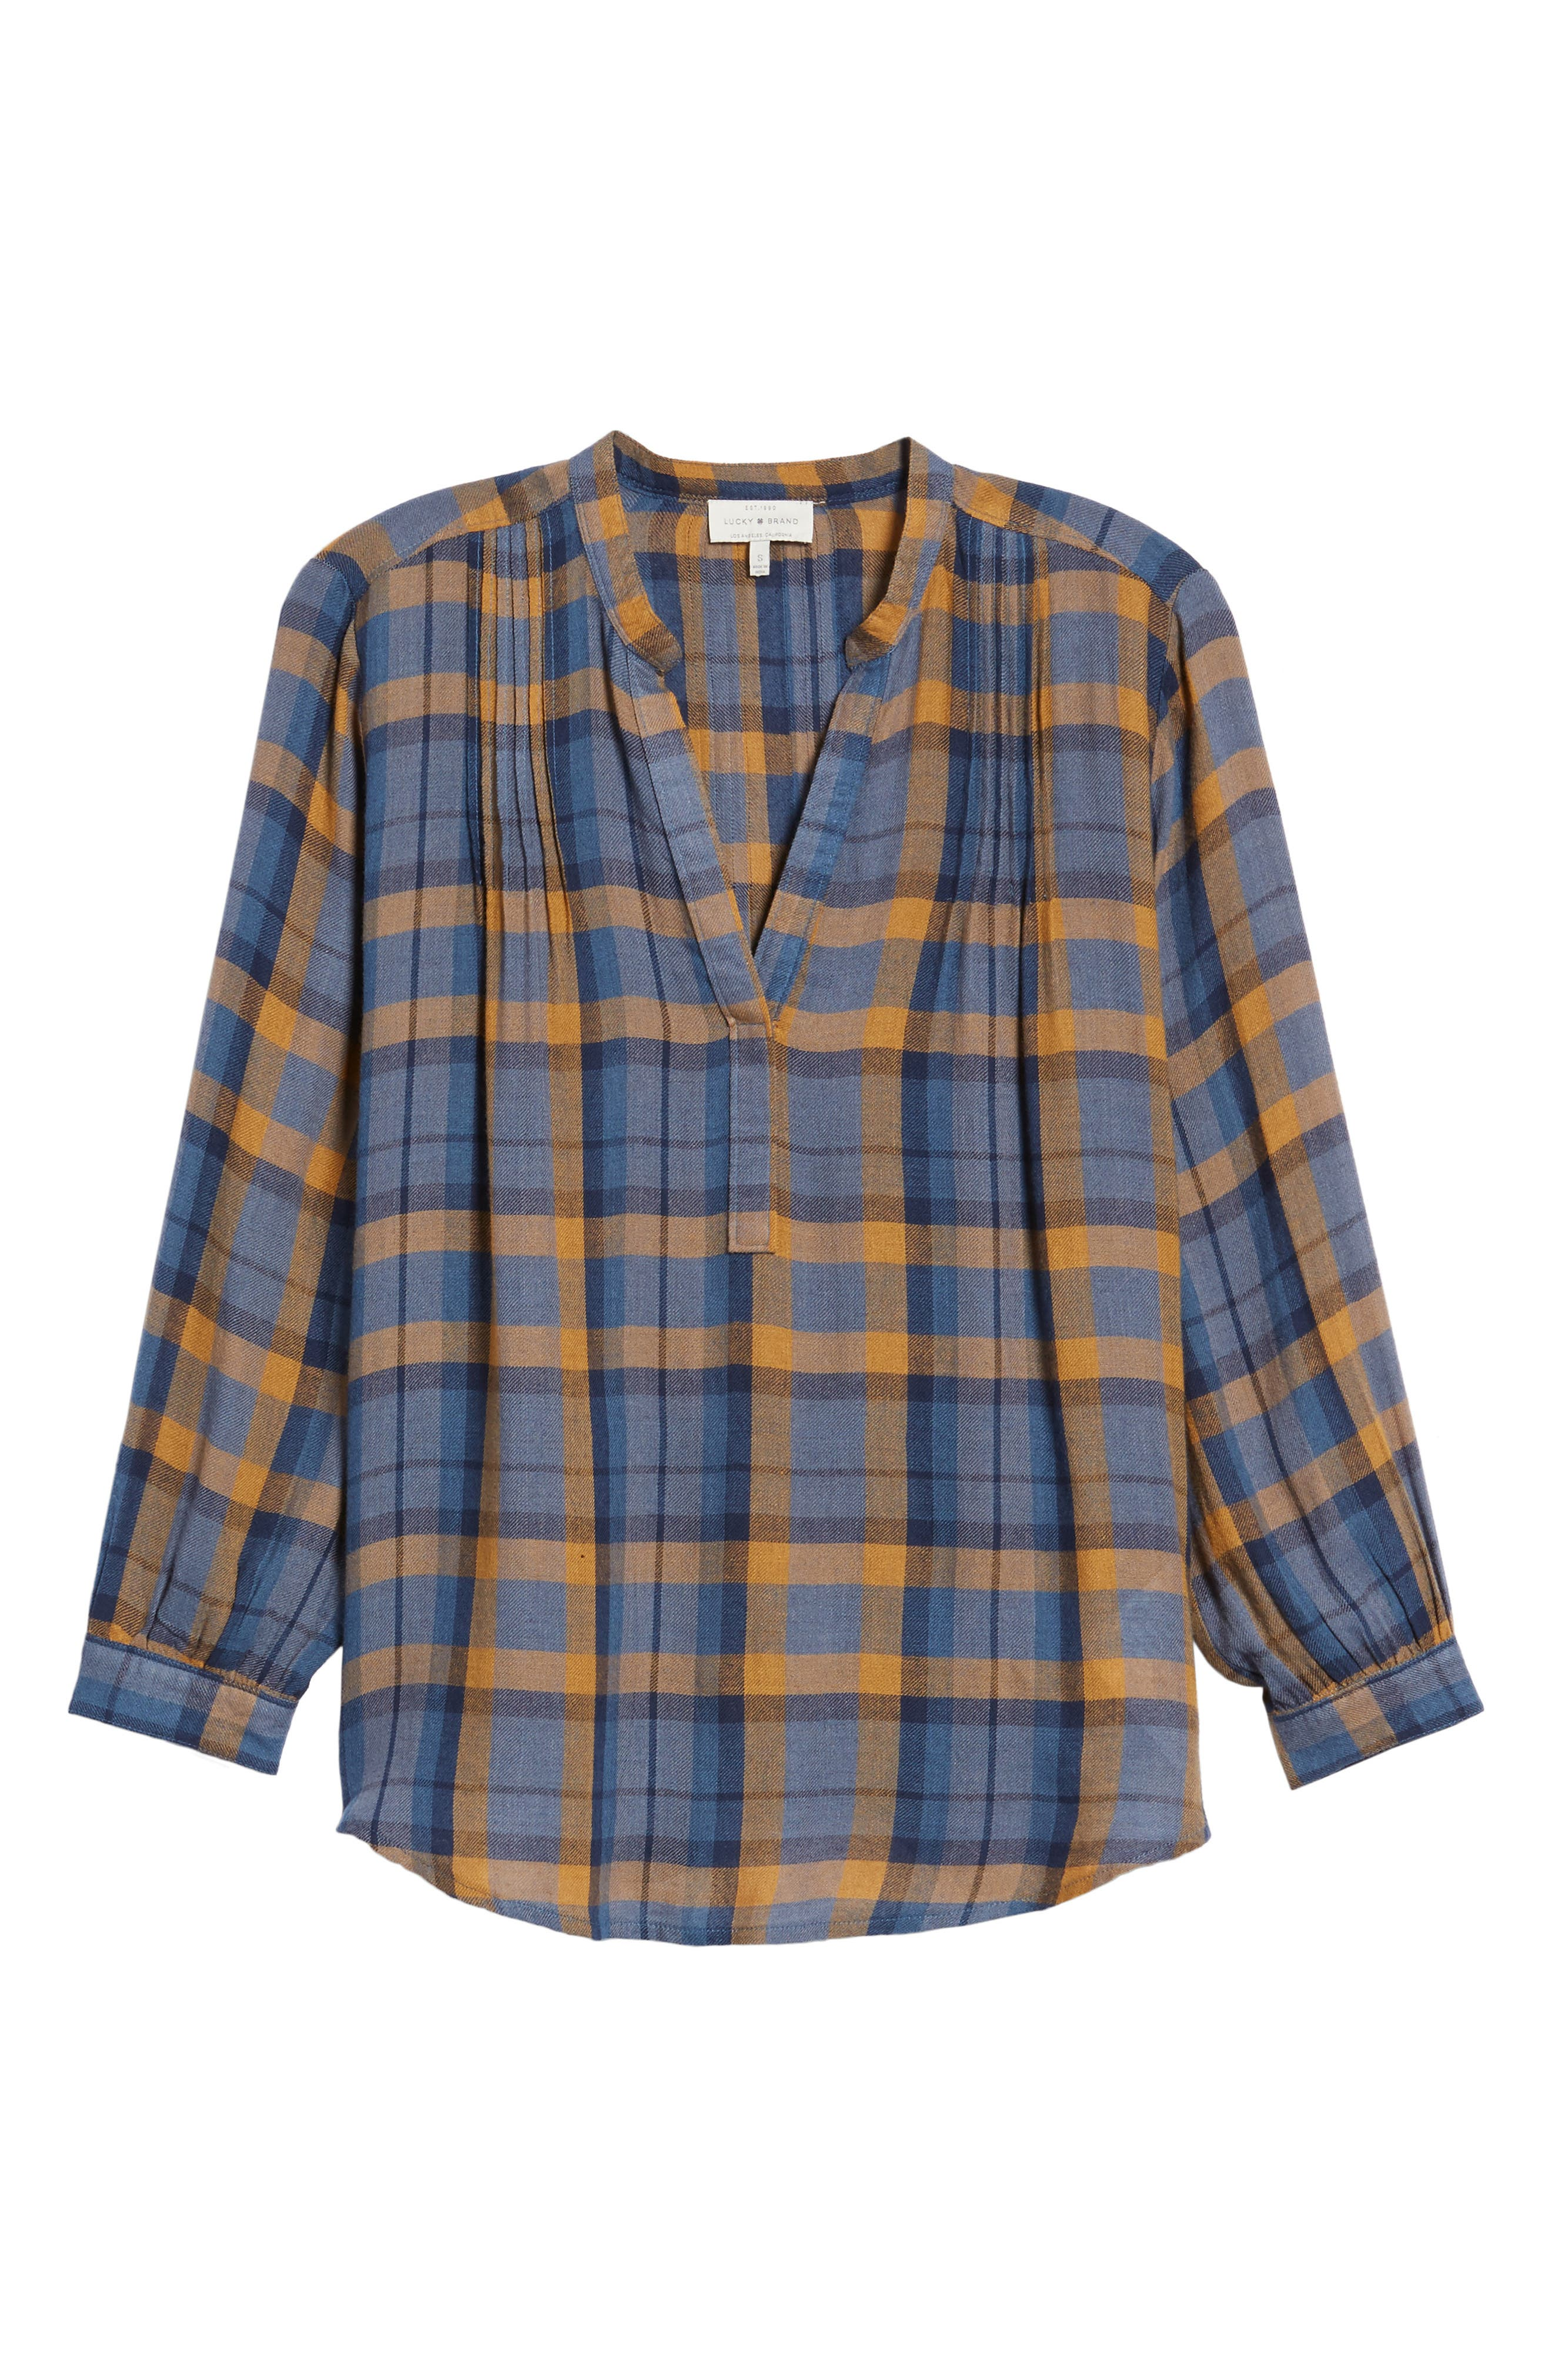 Plaid Top,                             Alternate thumbnail 6, color,                             Blue Multi